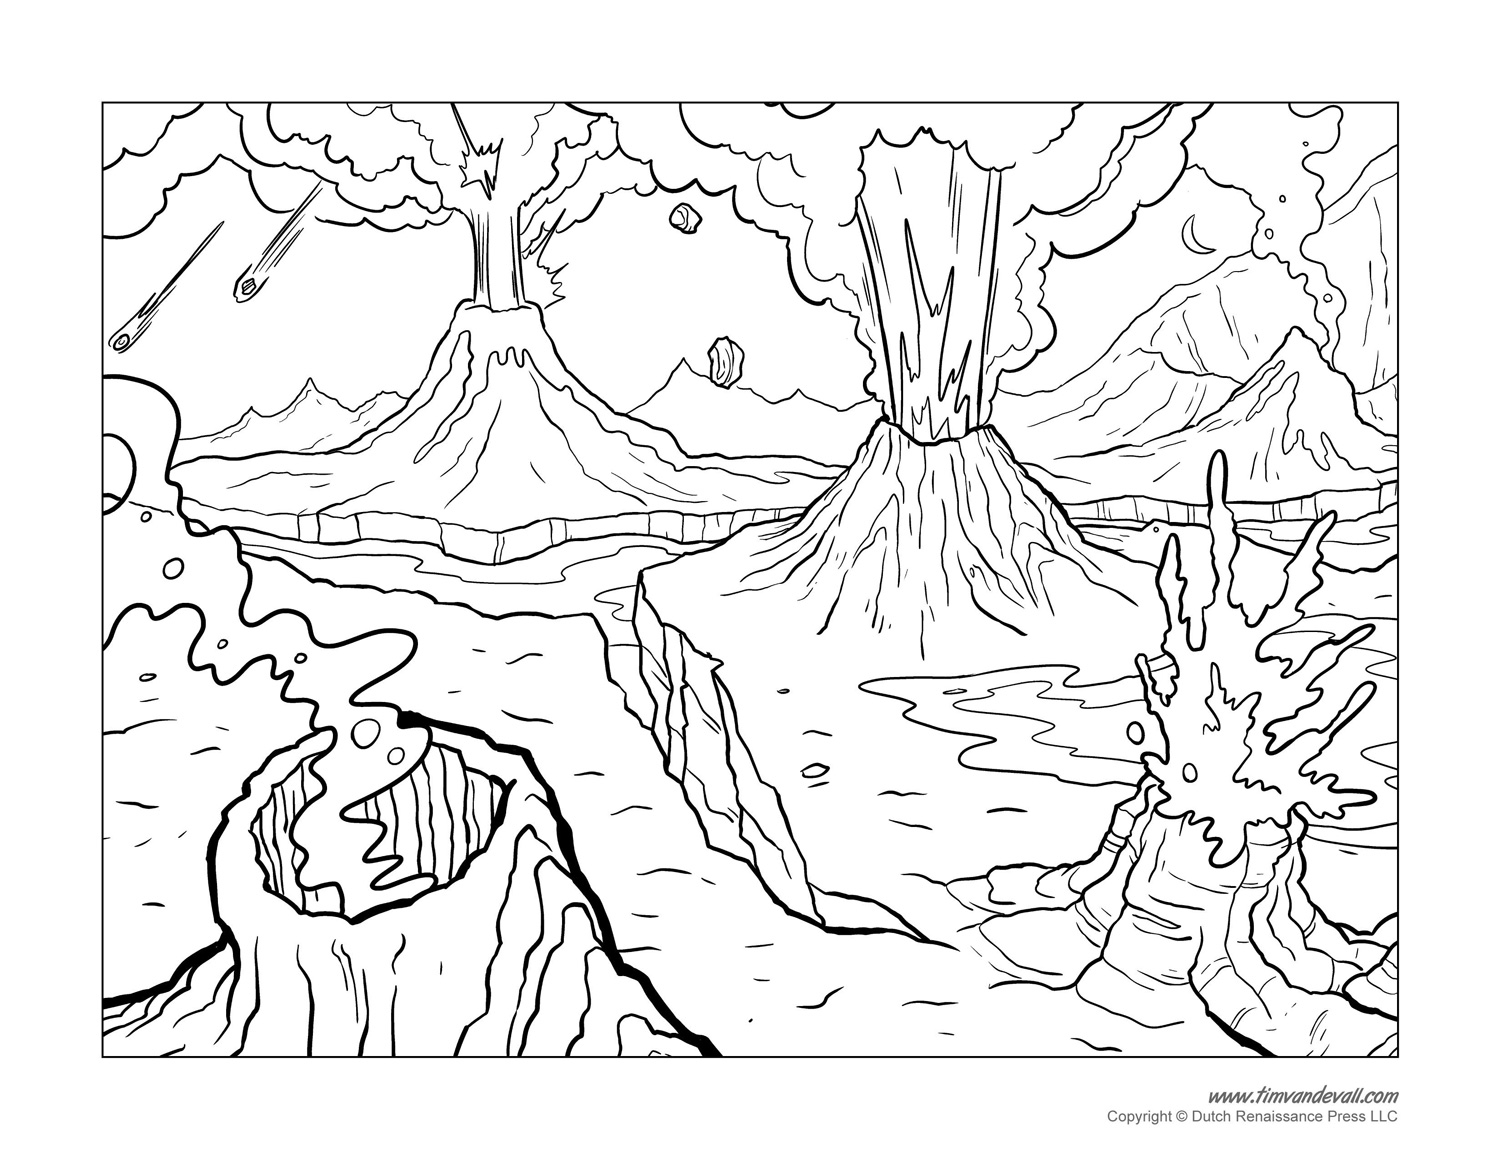 coloring sheet volcano volcano coloring pages coloring sheet volcano